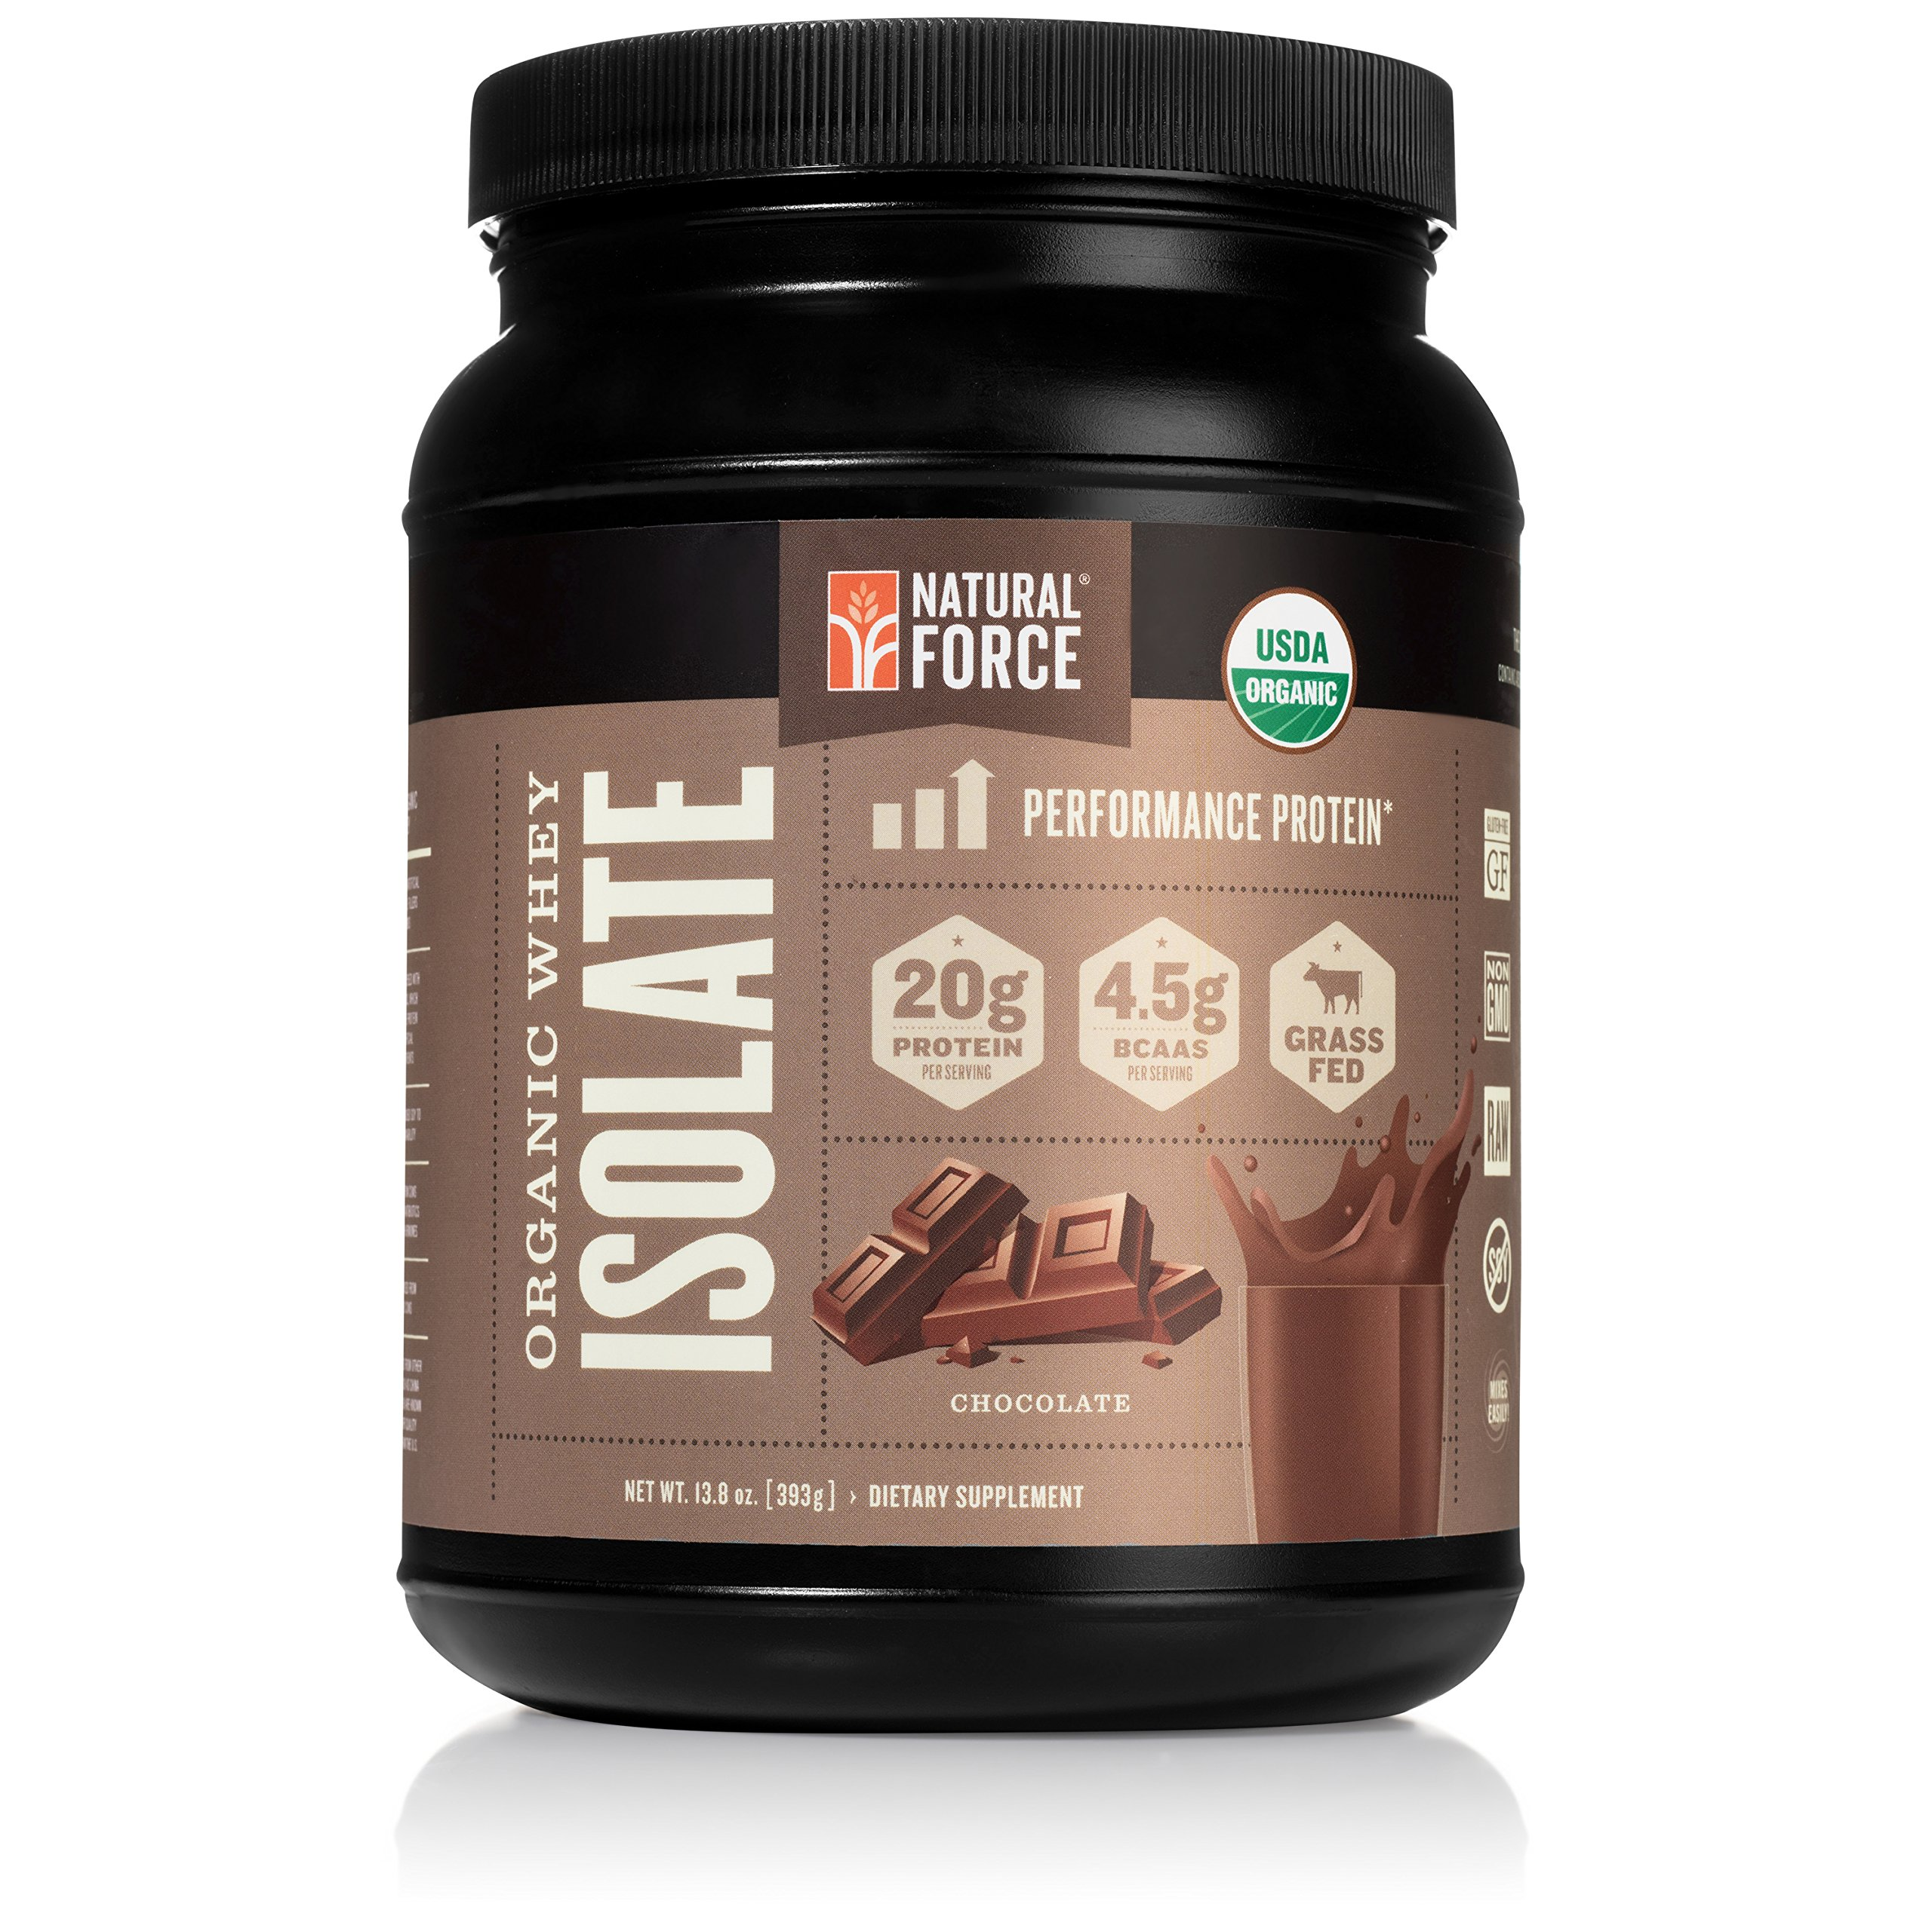 Organic Whey Protein Isolate Powder Chocolate, Best Grass Fed Whey Protein Powder for Men and Women*, No Sugar and Non GMO, Made and Sourced in The U.S.A. by Natural Force, 13.8 Ounce